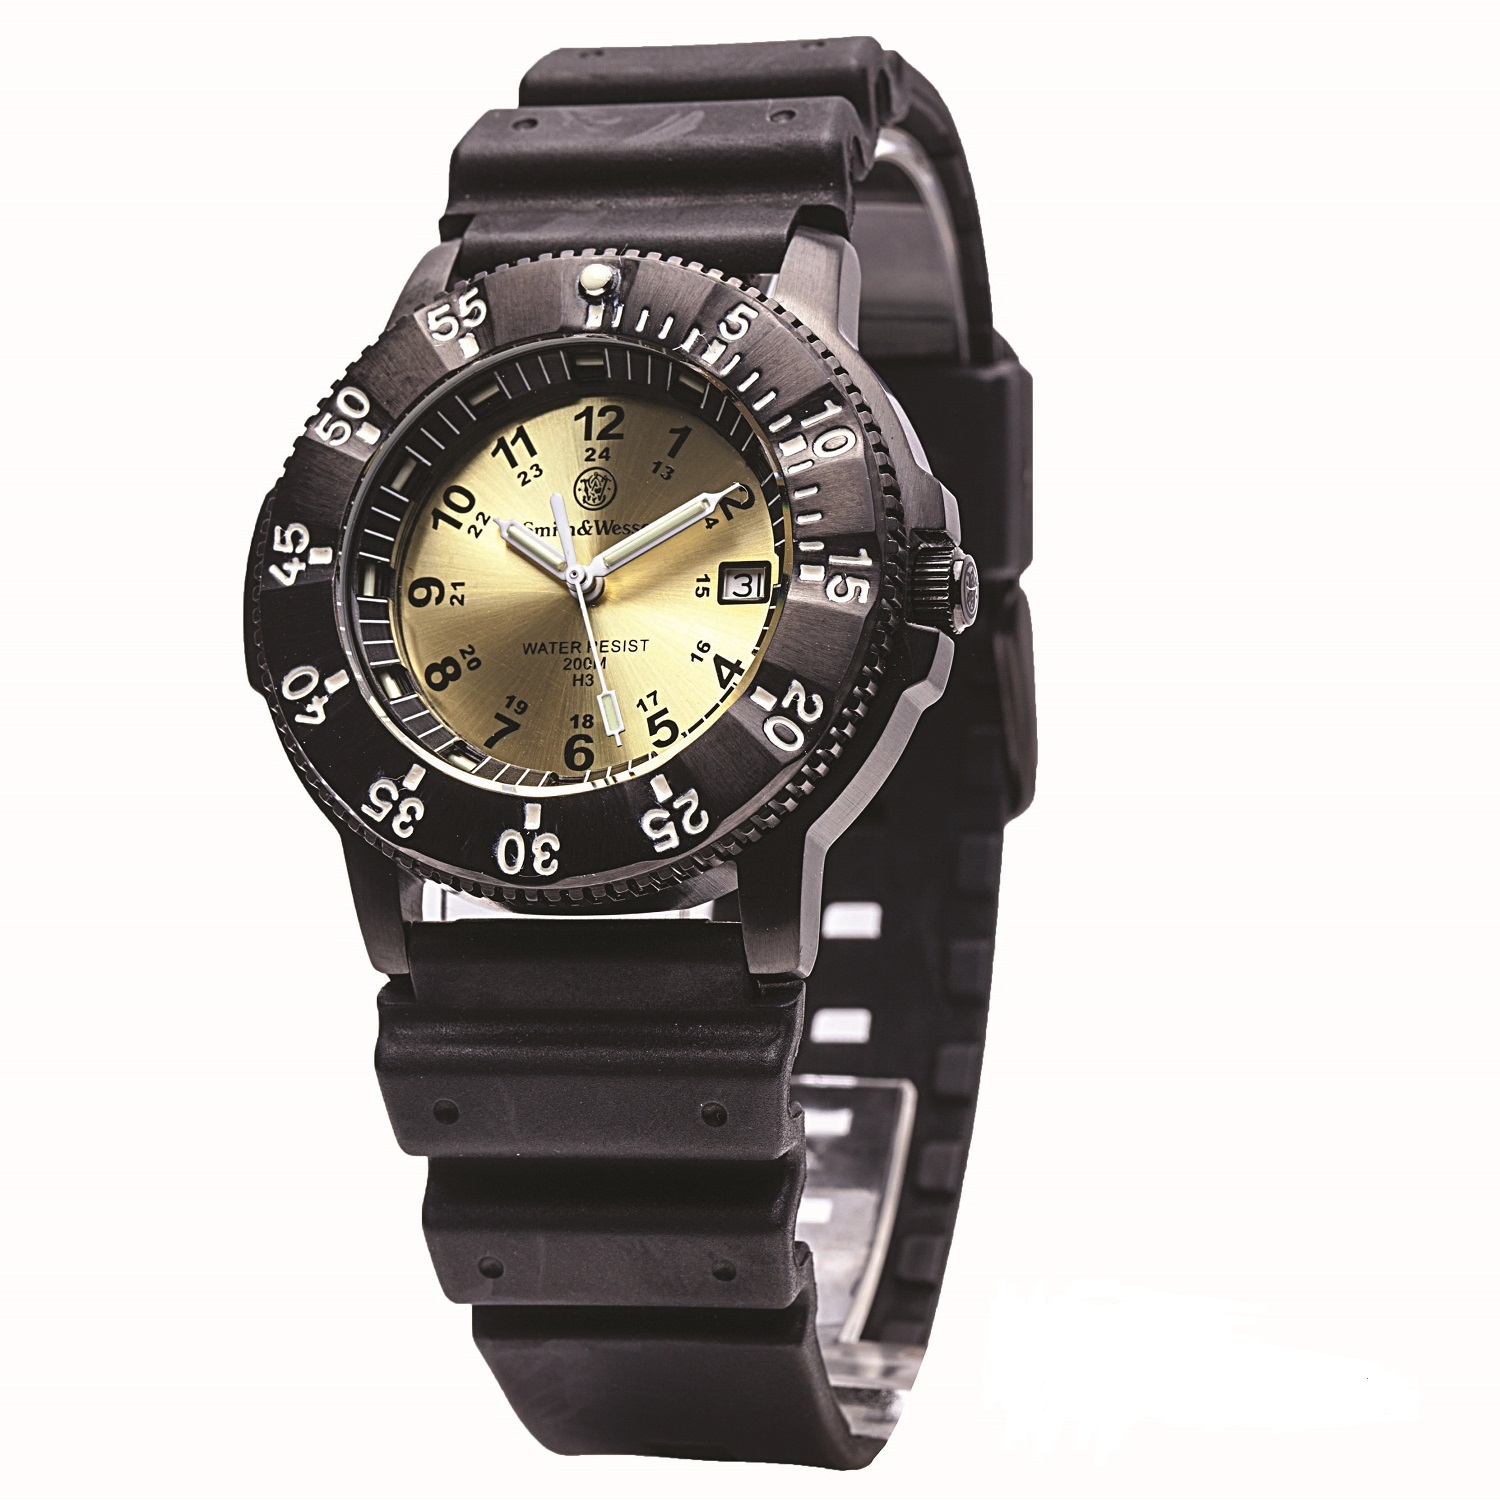 Smith and Wesson Tritium Watches